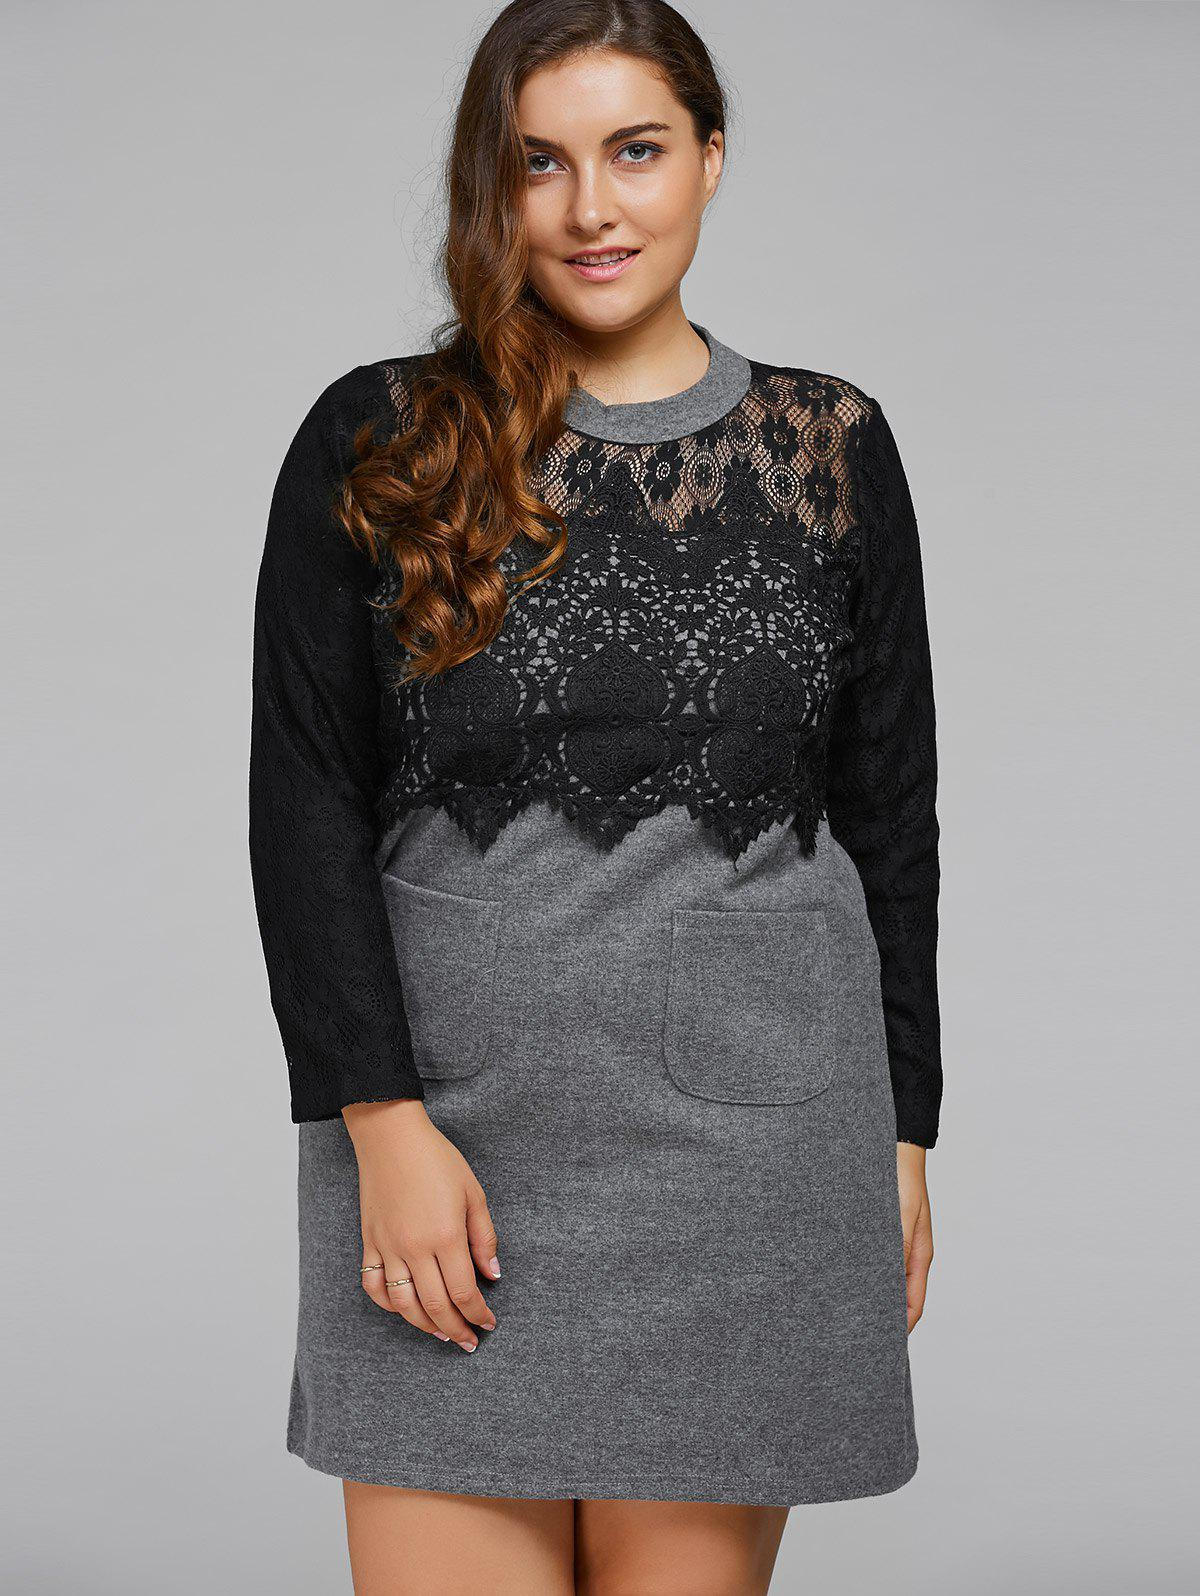 Lace Patchwork Openwork Wool Dress - GRAY 2XL